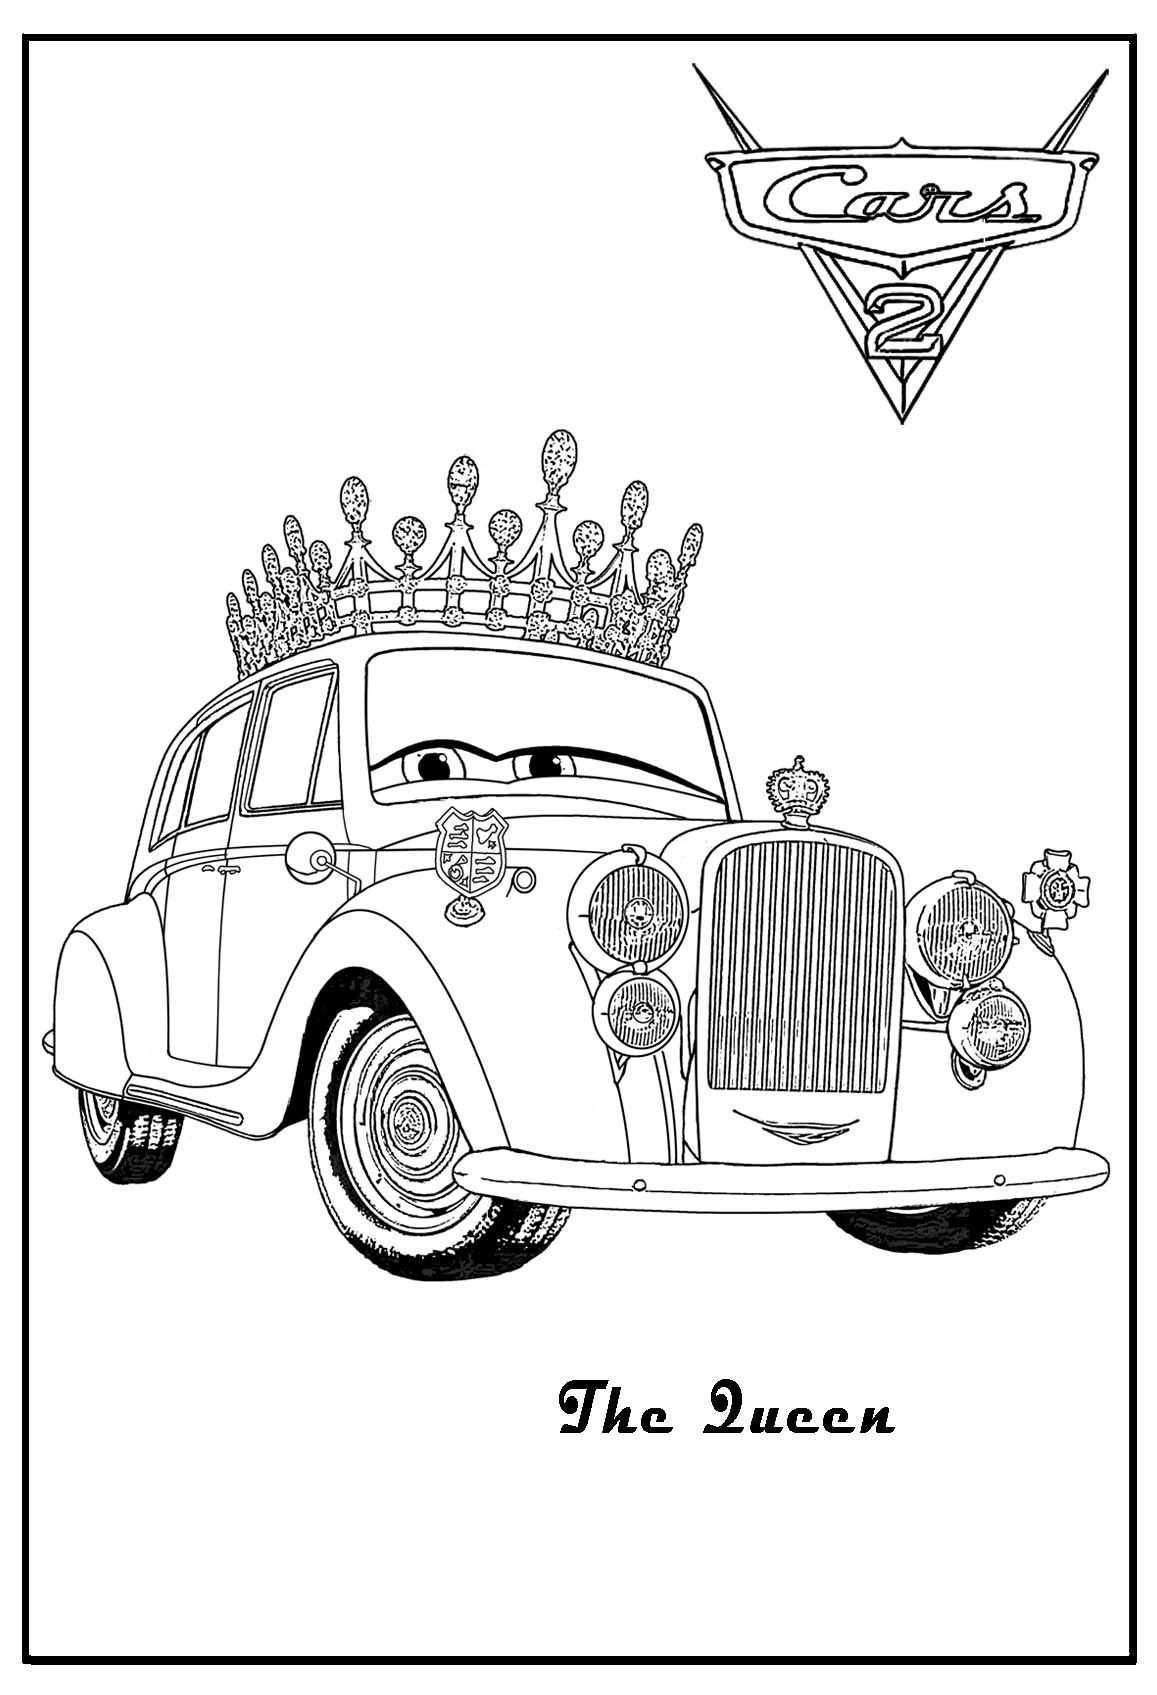 Cars 2 Printable Coloring Pages Cars Coloring The Queen Cars Coloring Luigi Cars Coloring Lamborgh Cars Coloring Pages Coloring Pages For Kids Coloring Pages